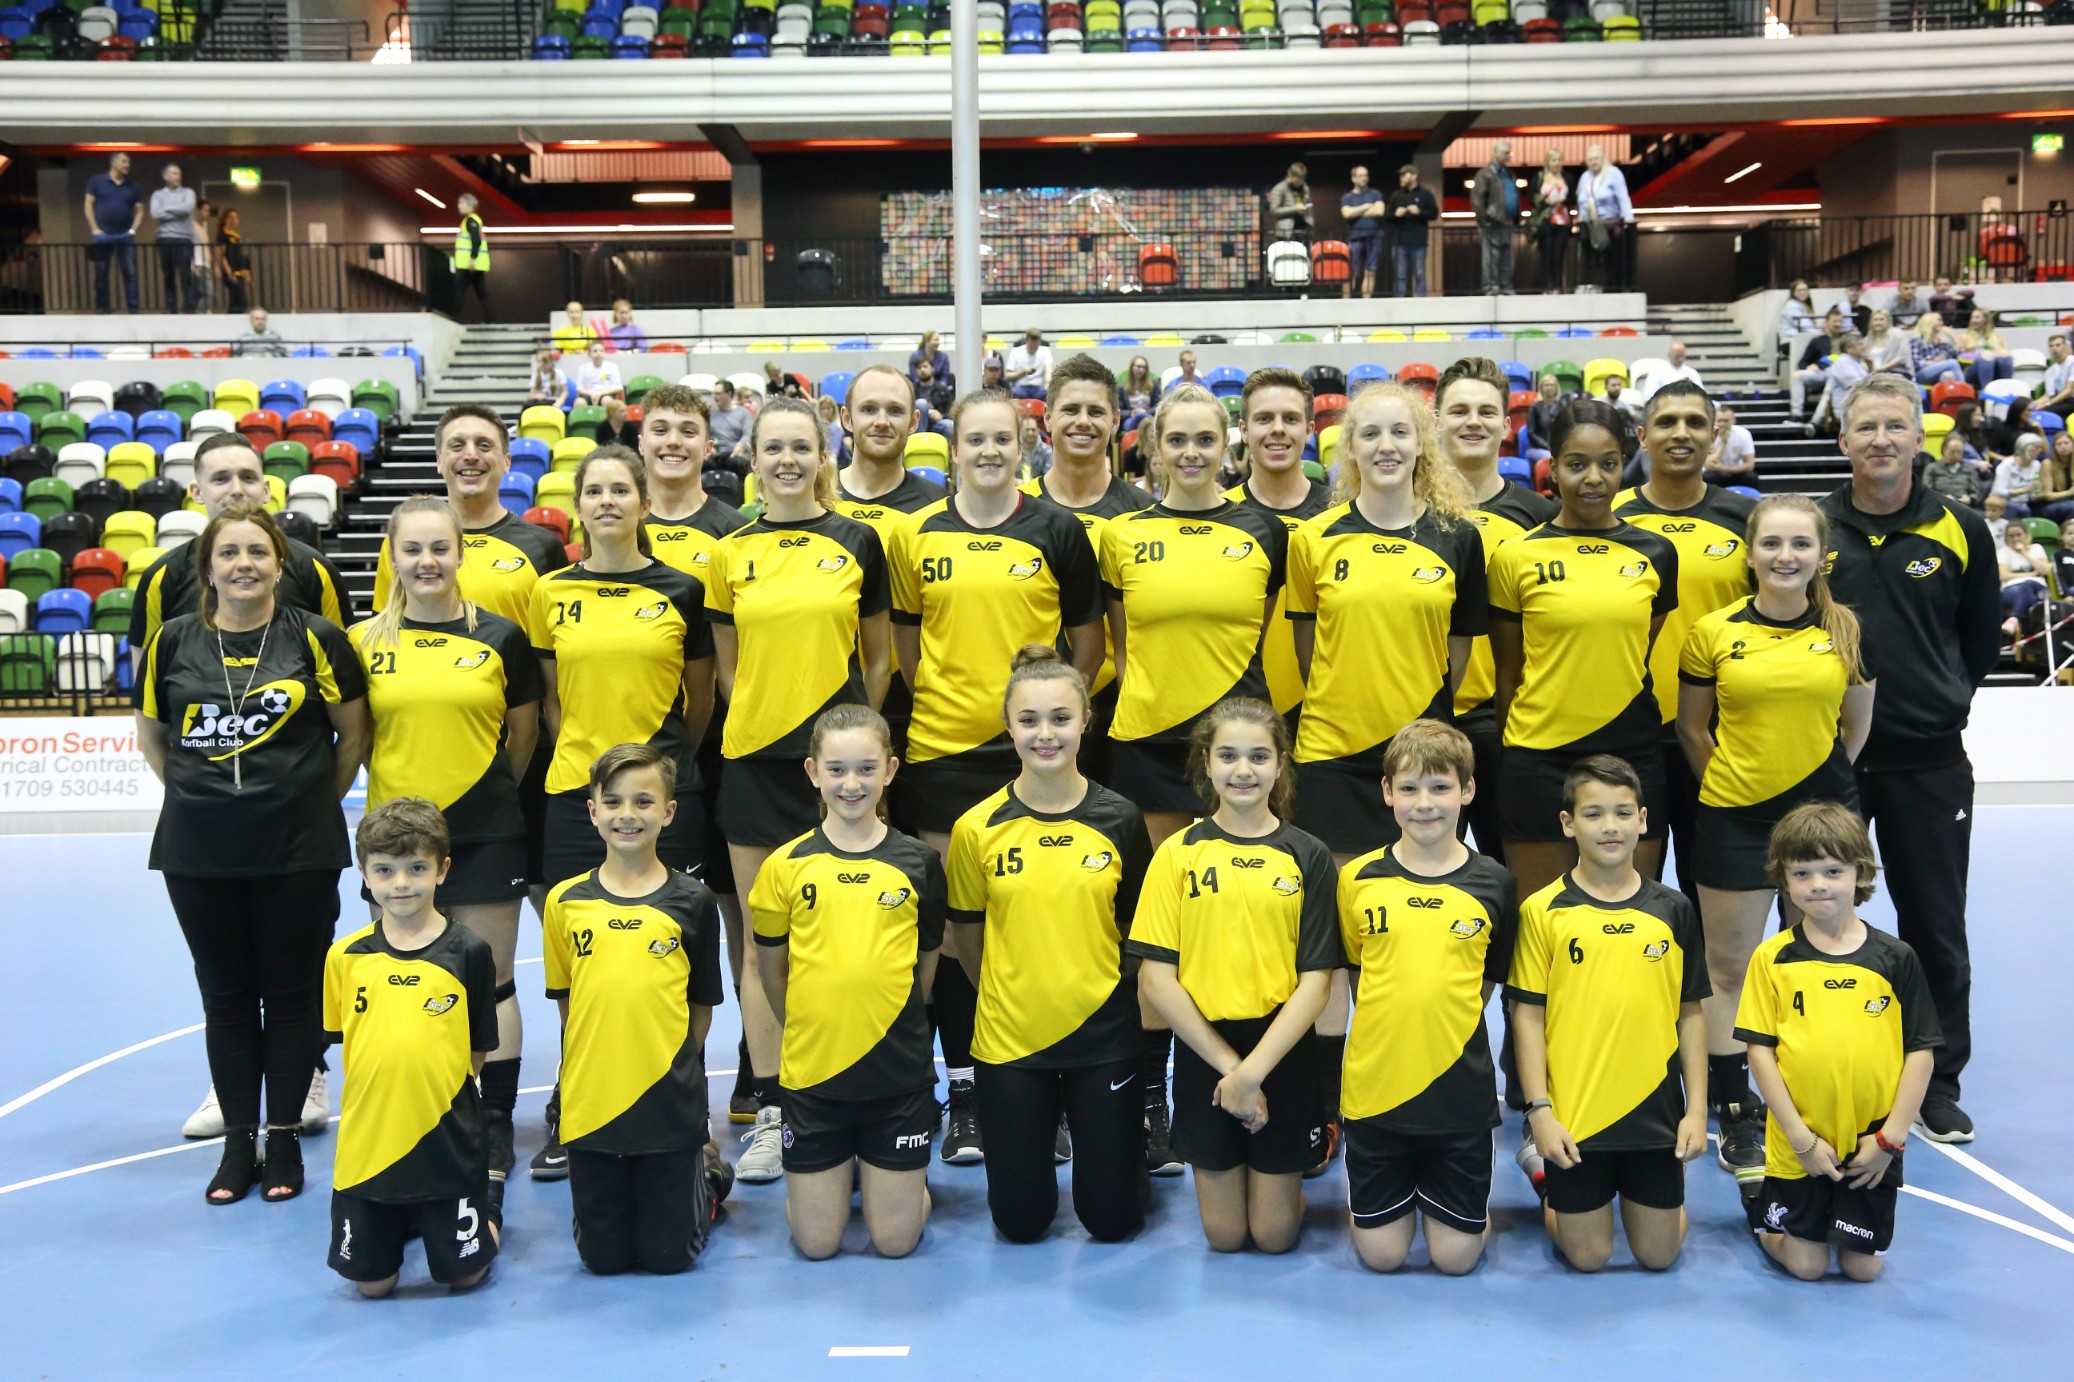 Korfball teams